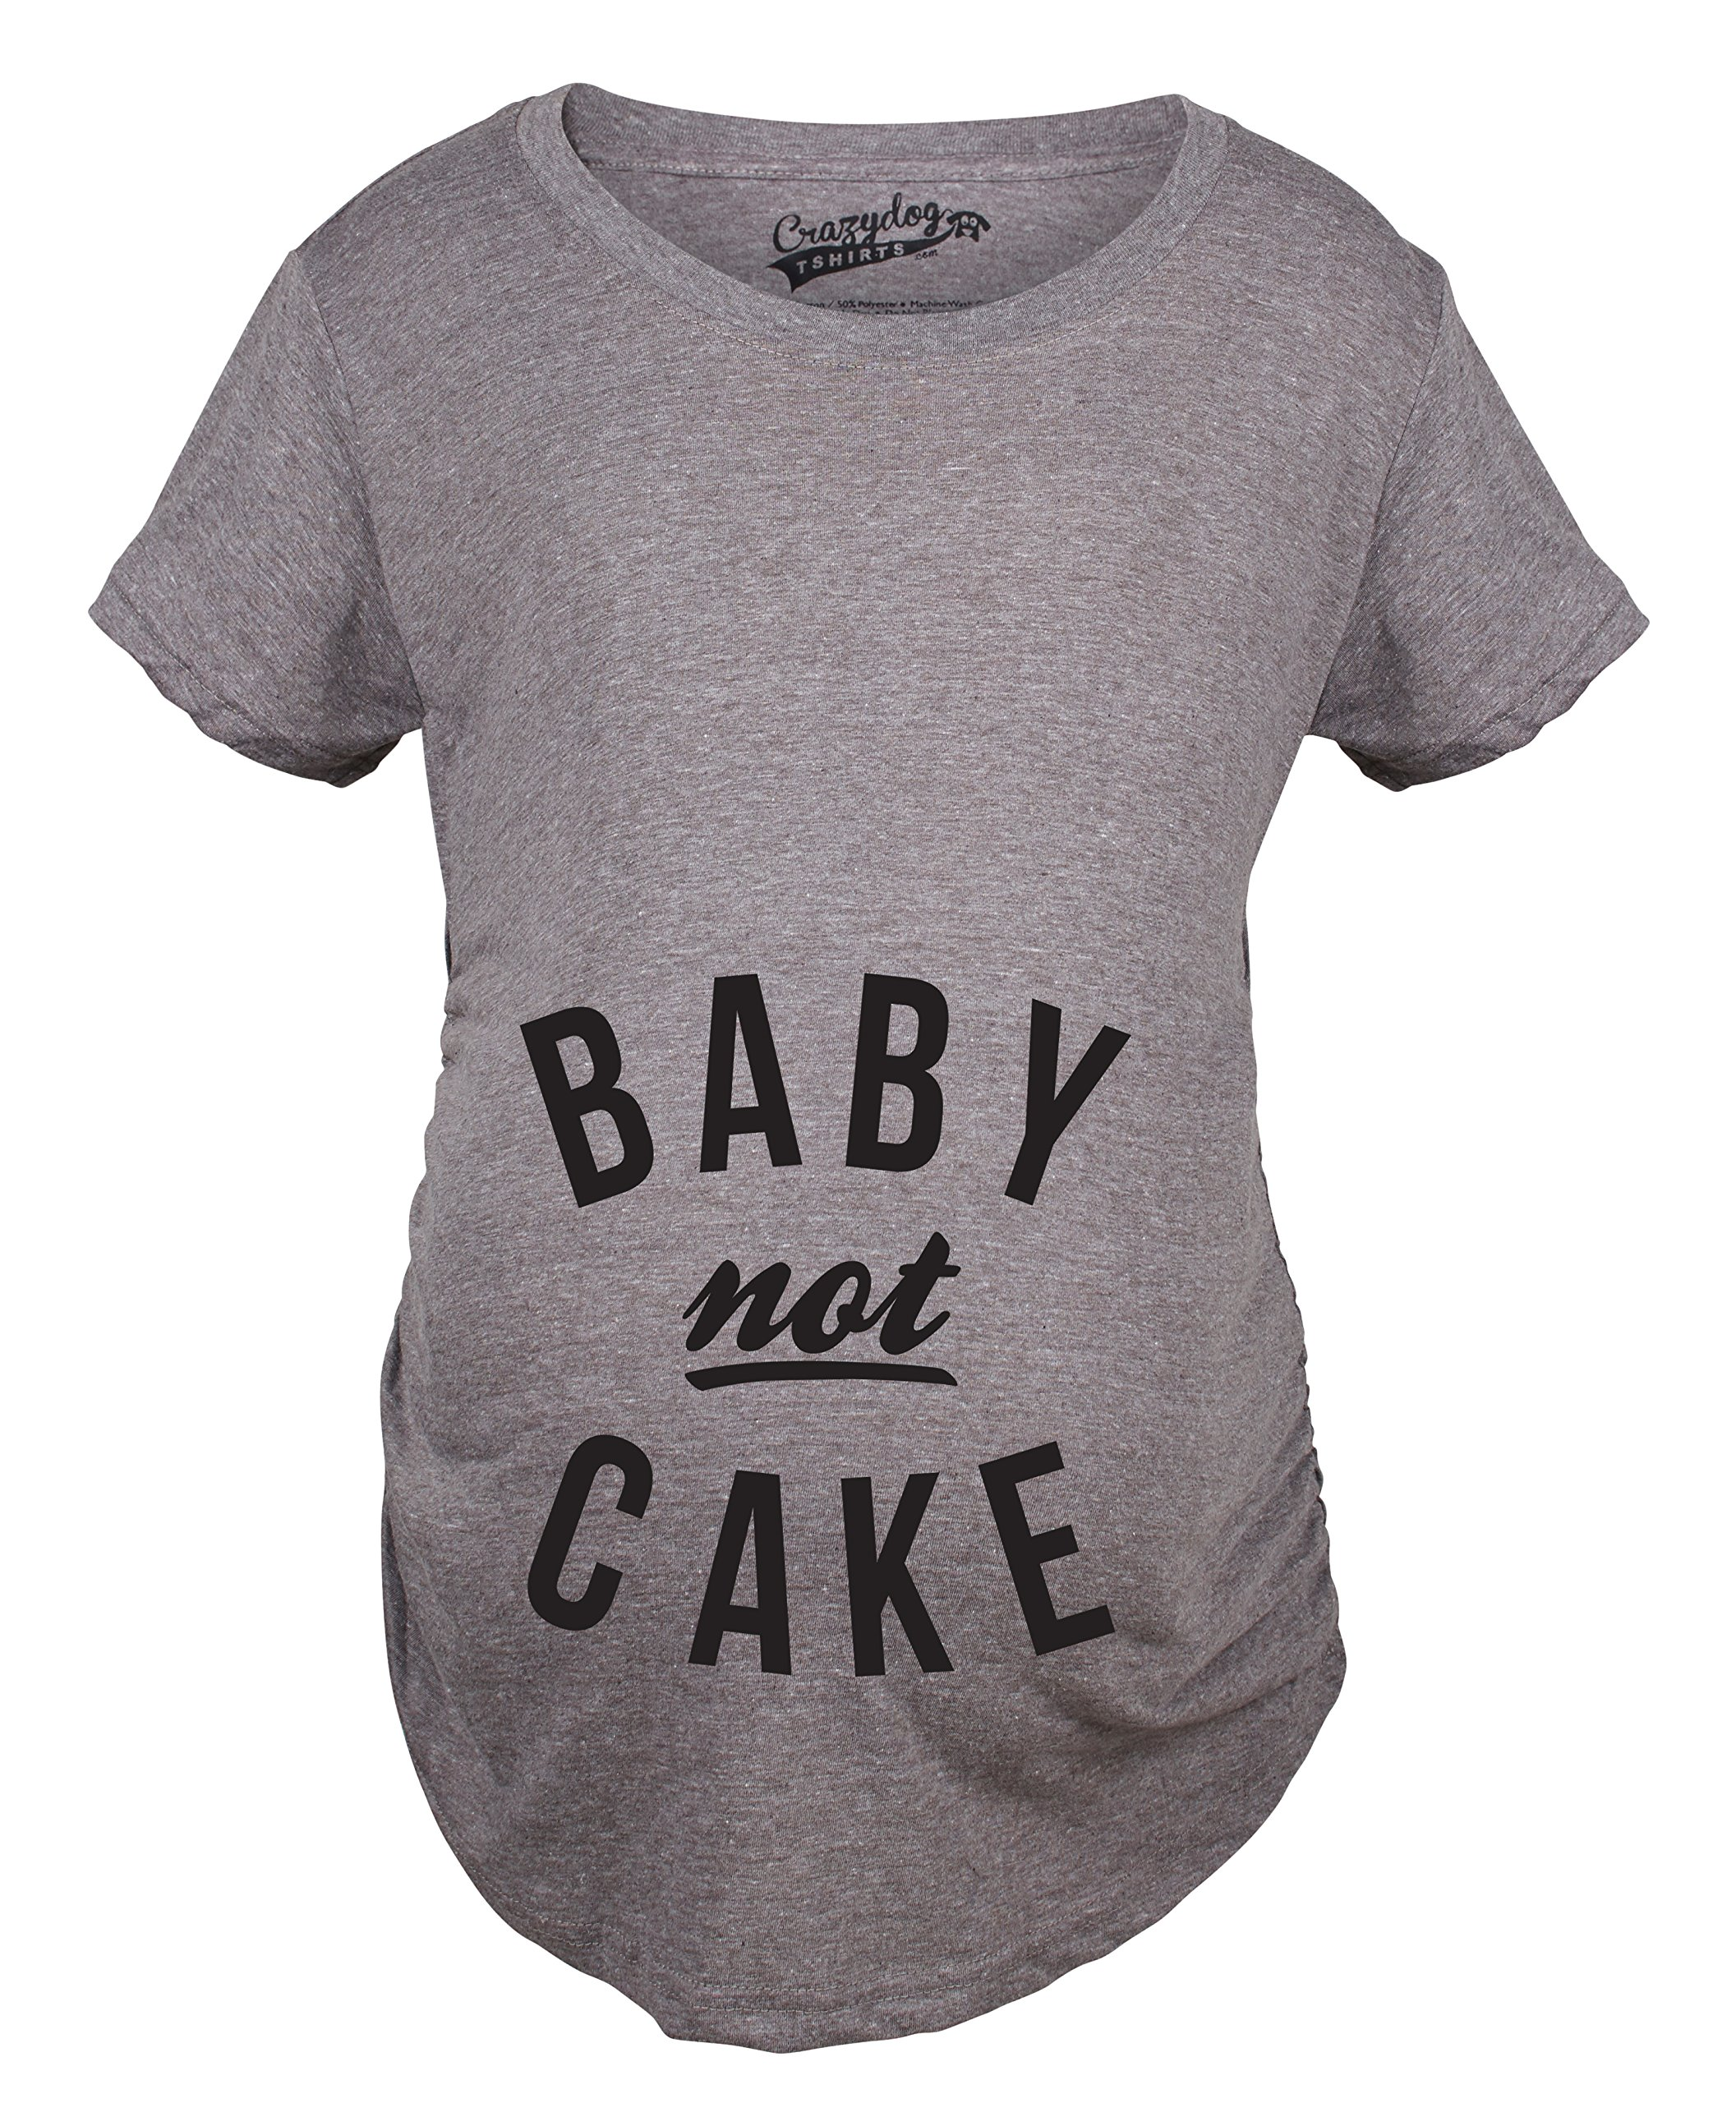 Maternity Baby Not Cake Funny Pregnancy Tees for Pregnant Announcement Funny T Shirt (Grey) -M